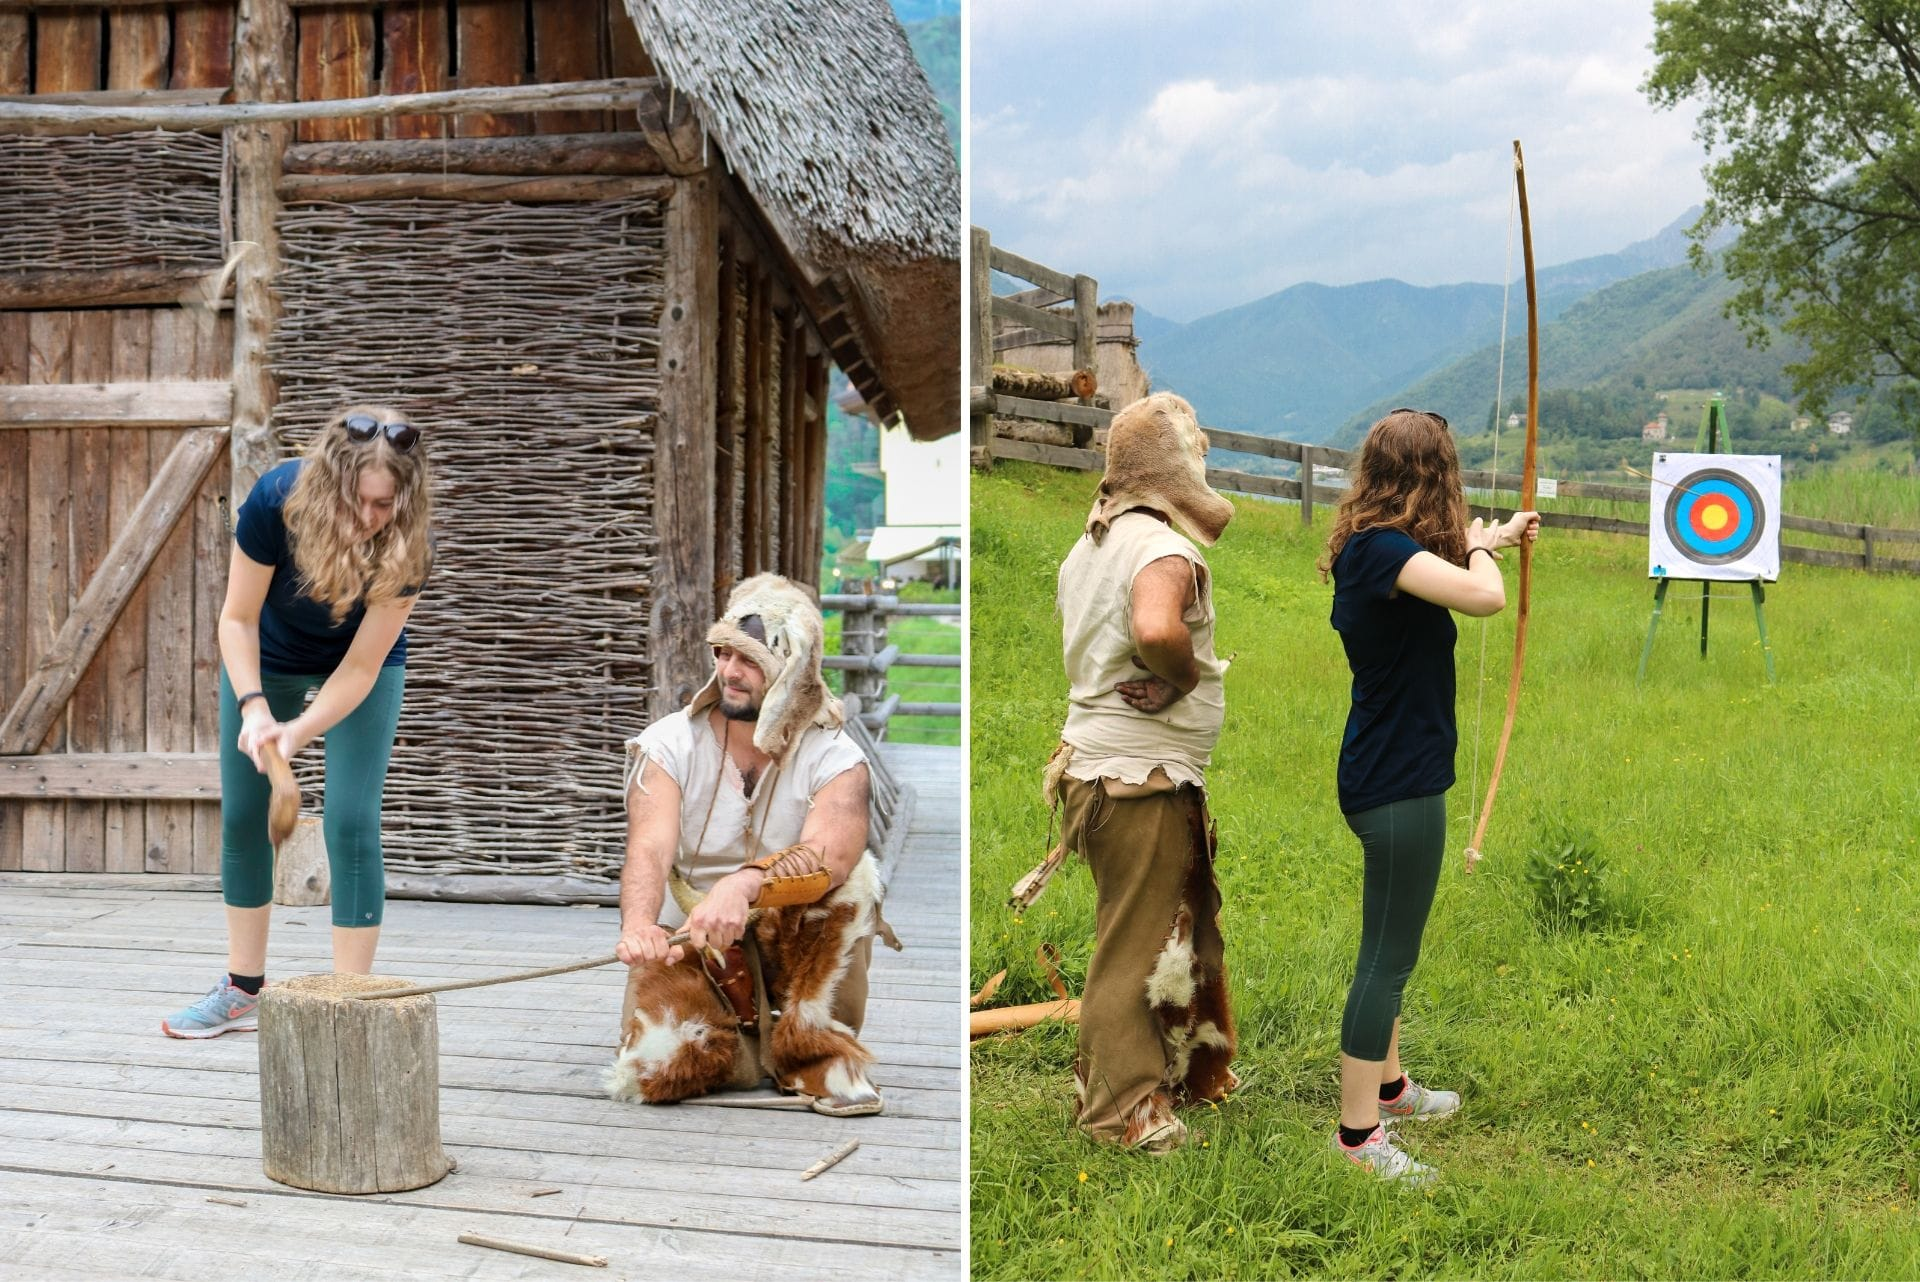 girl-chopping-wood-and-doing-archery-at-museo-delle-palafitte